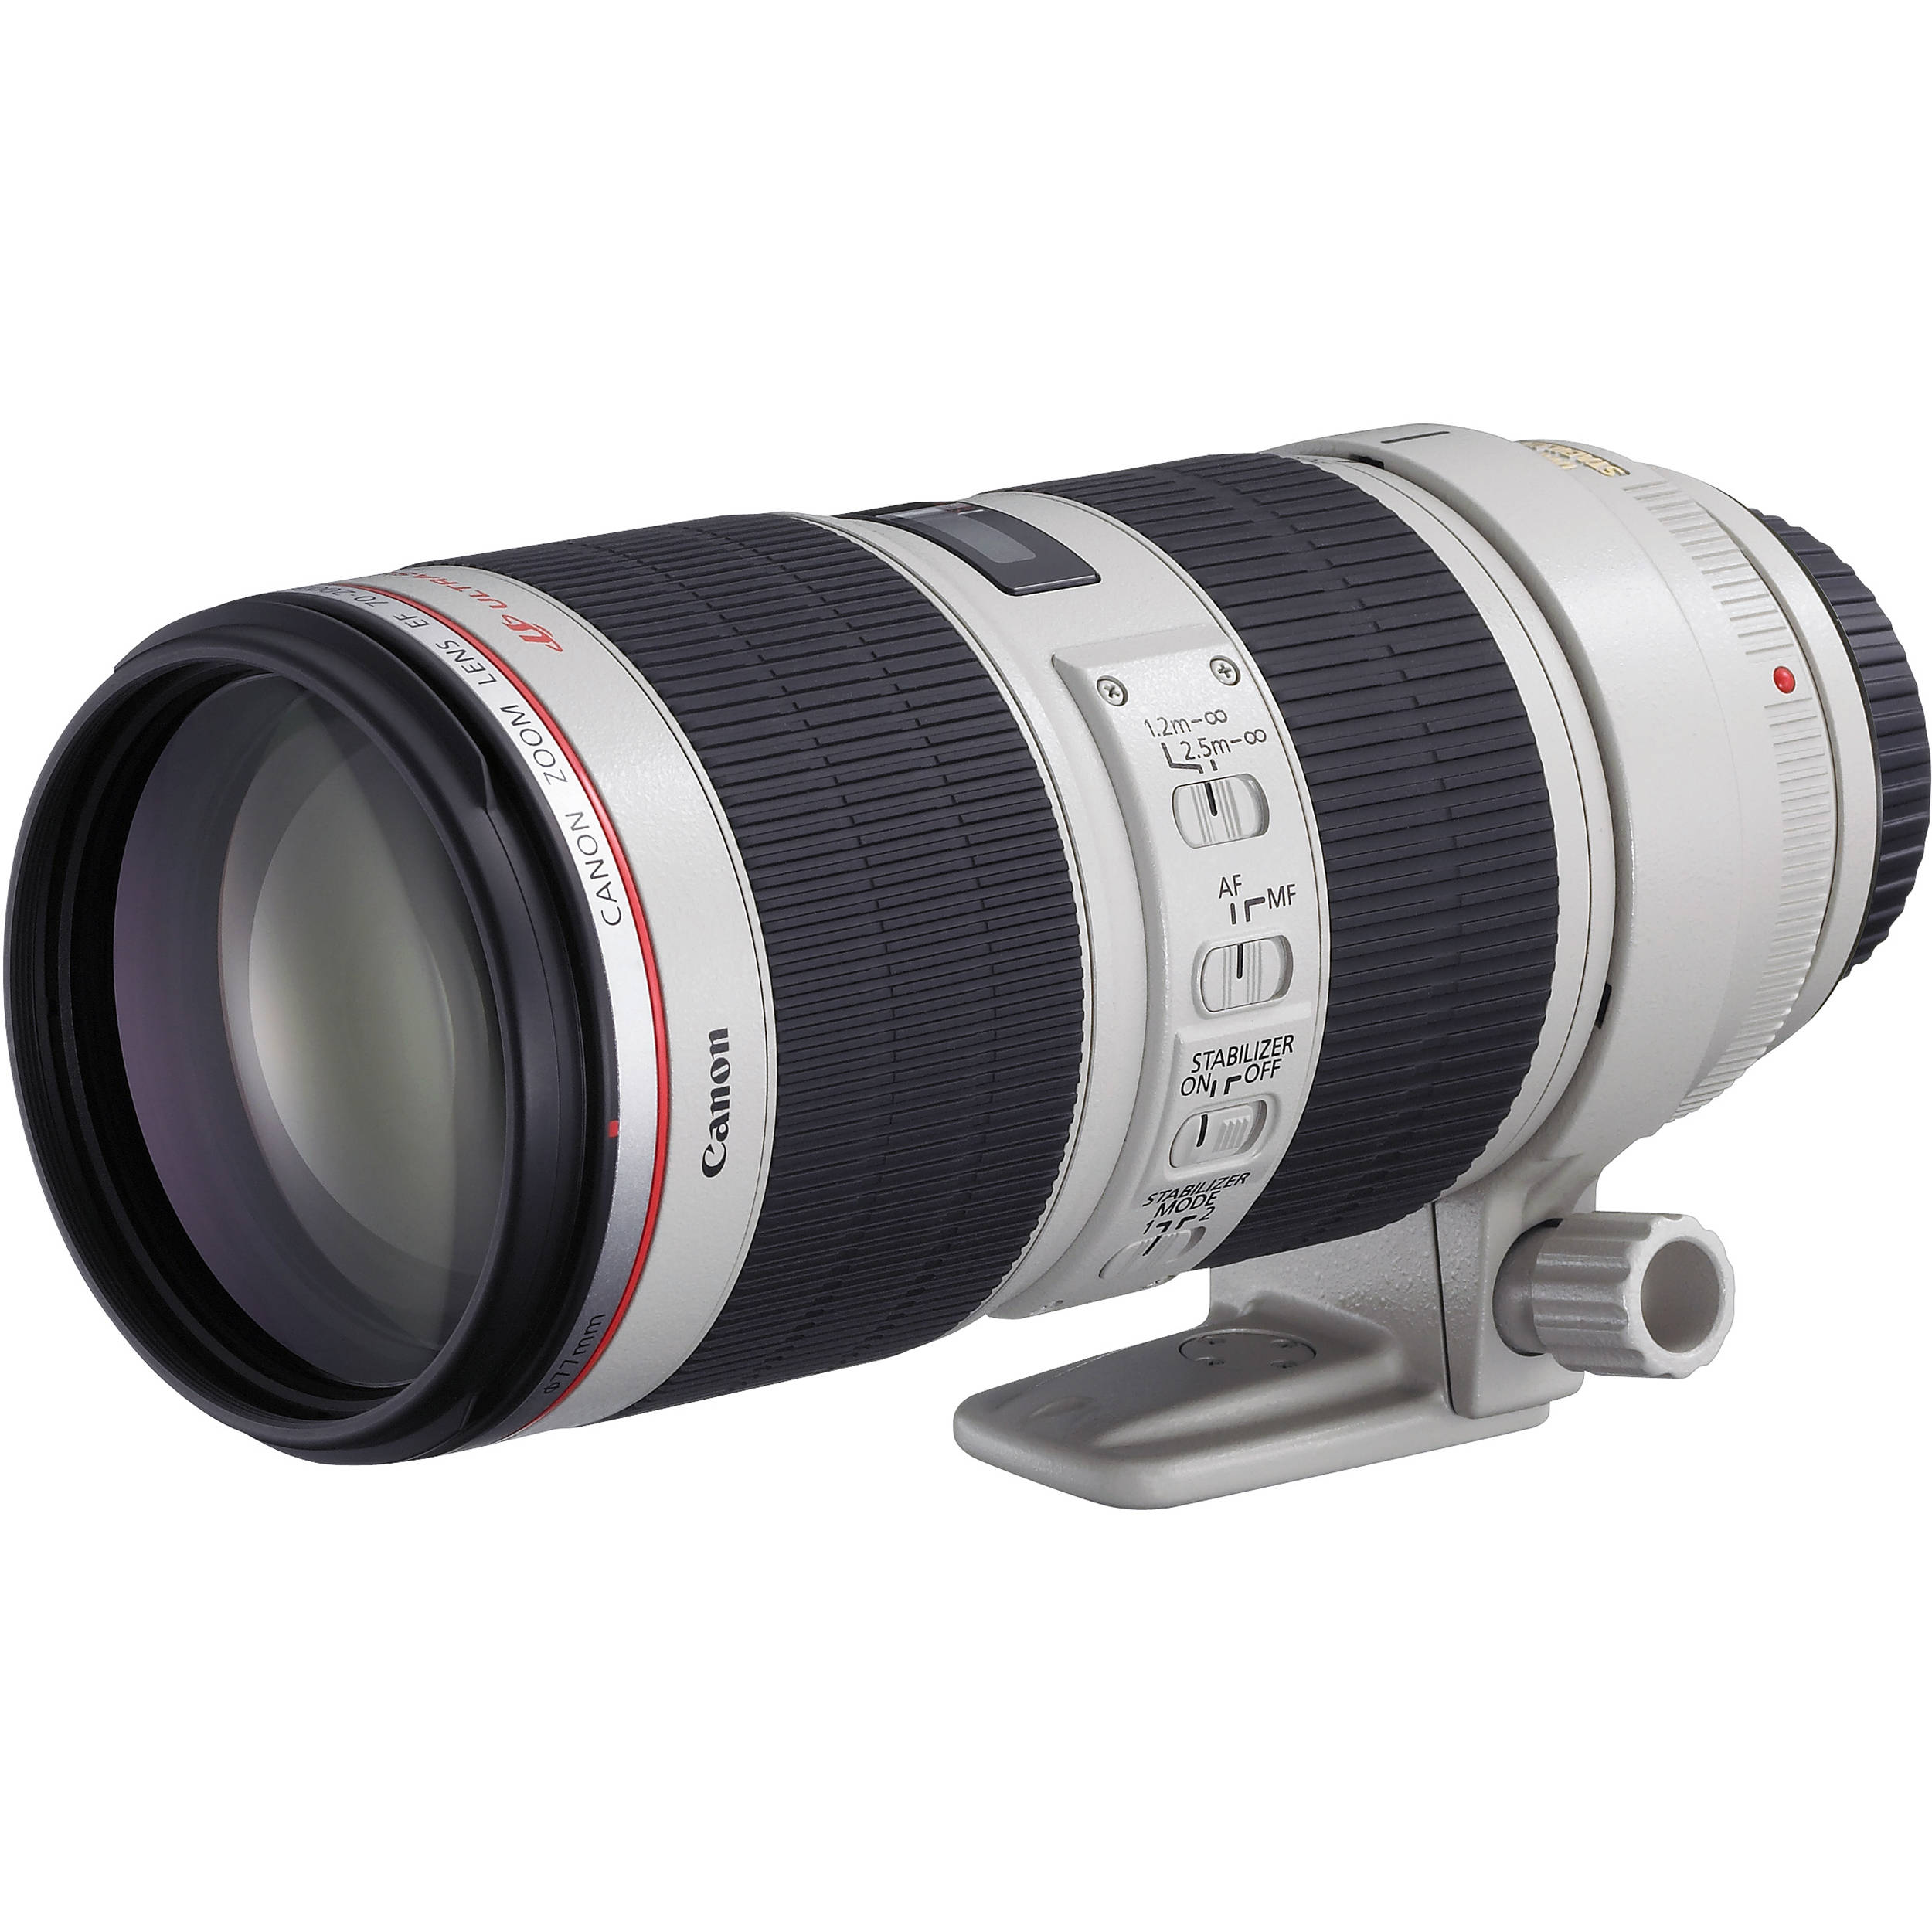 70-200MM IS F/2.8